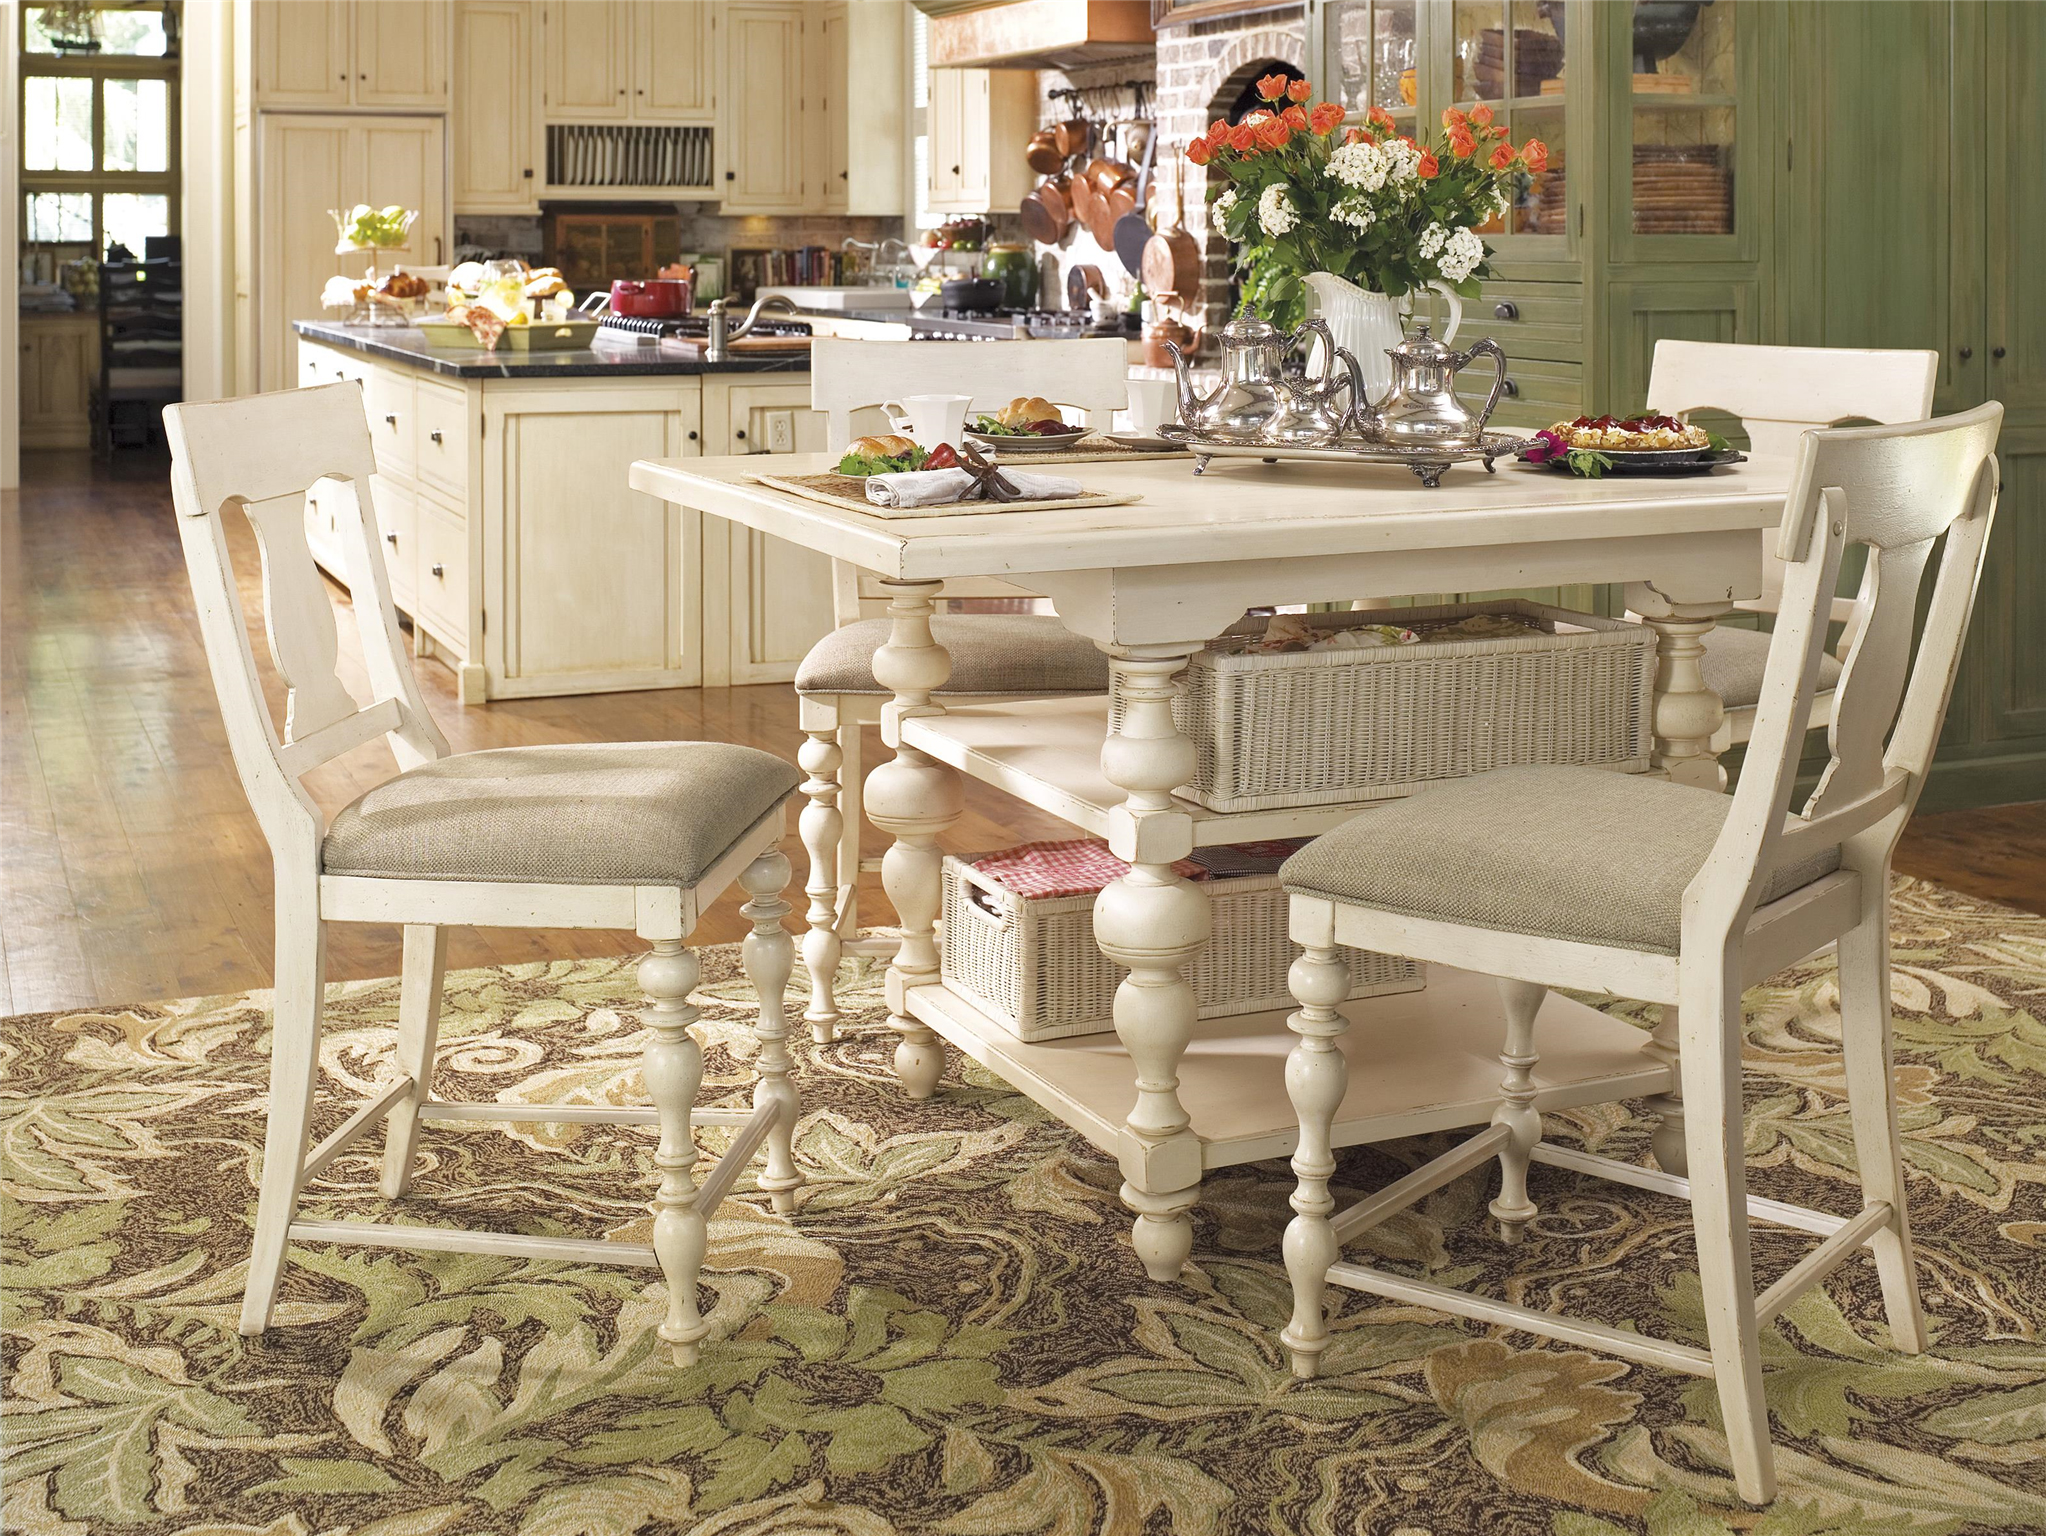 paula deen table and chairs bulk chair covers canada universal furniture home counter height loading zoom